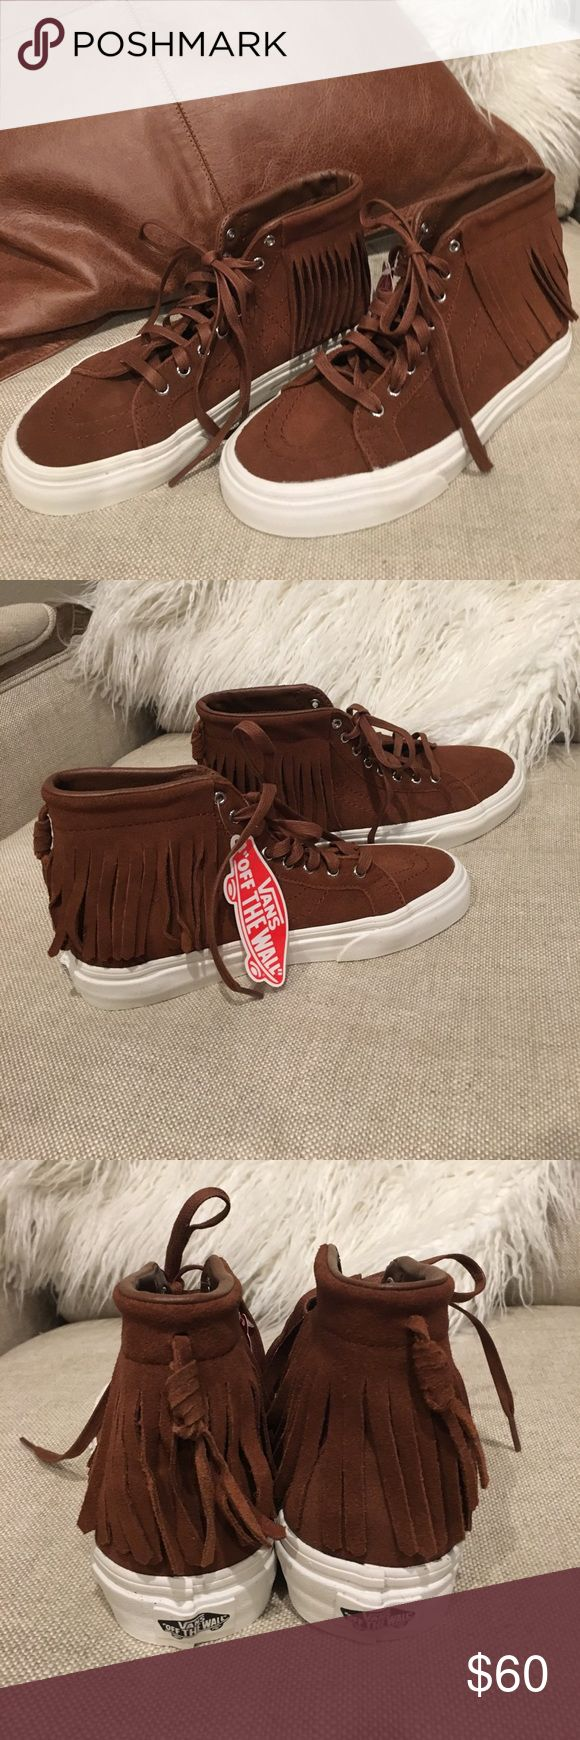 NEW-Vans Hi Moc suede with fringe-brown Brand New pair of Vans hi tops. Women's size 6 1/2. They are made of brown suede and are so cute!!! The fringe accents are so fun. Vans Makeup Eyeshadow